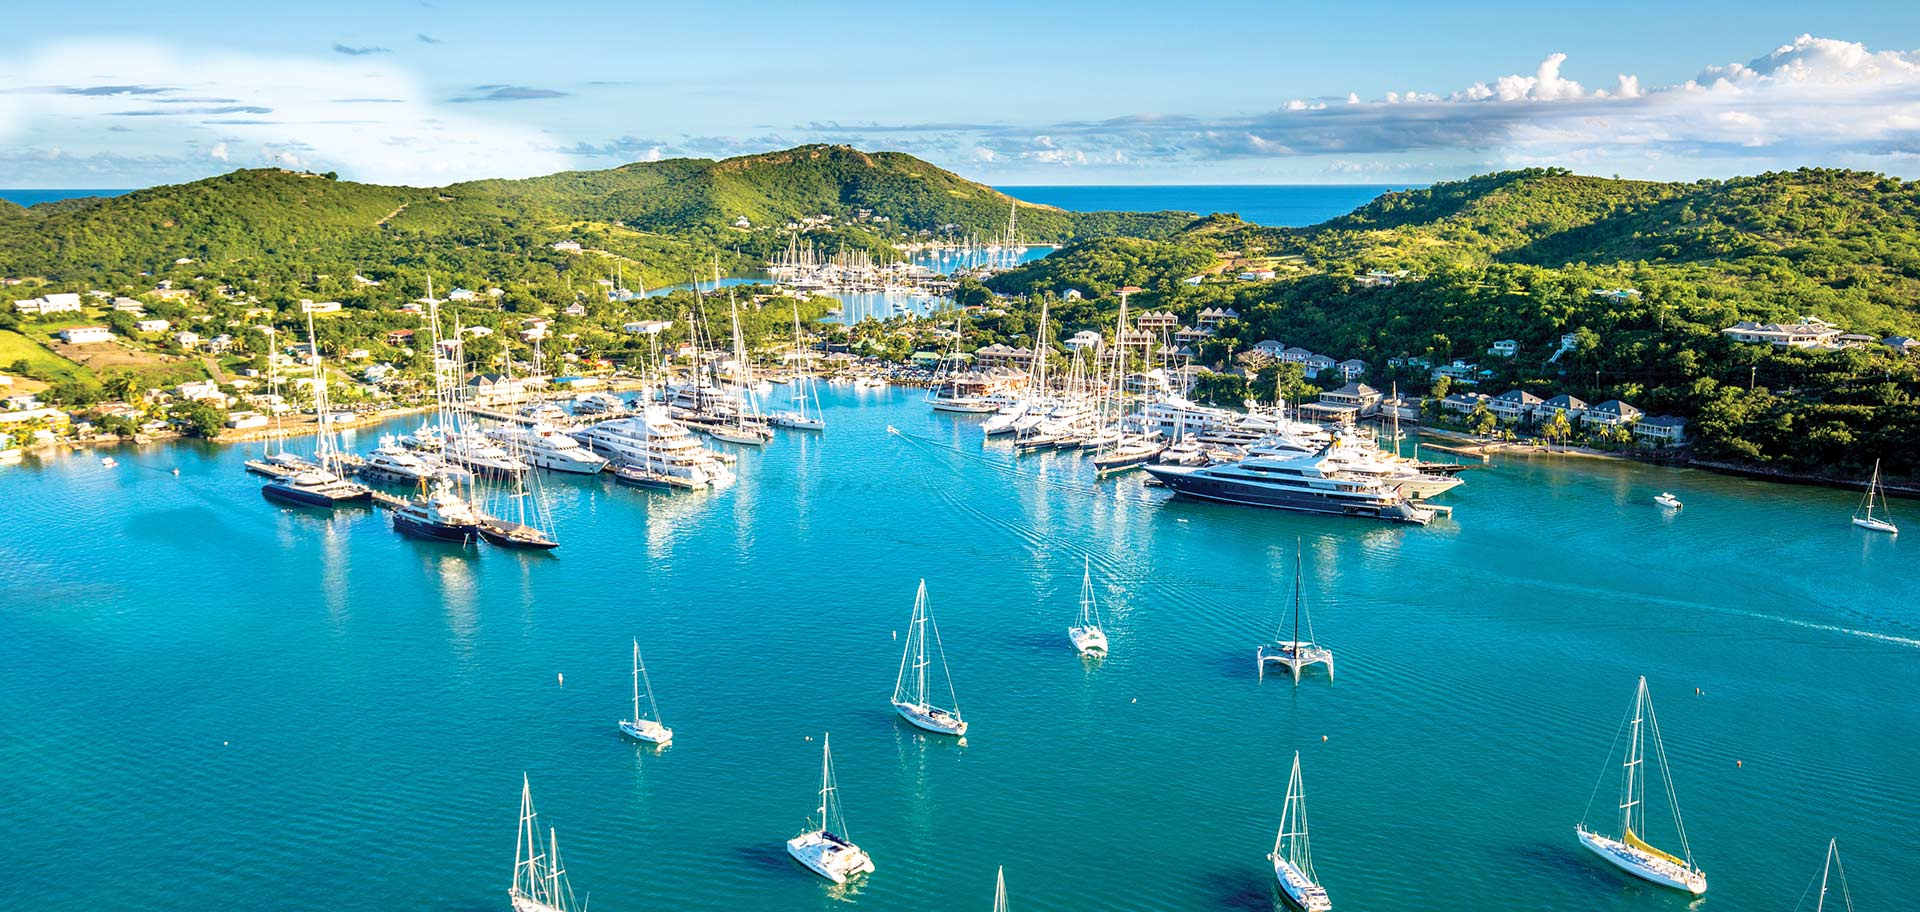 Why Billionaires are Fighting to Own a Slice of Half Moon Bay, the Caribbean's Most Exclusive New Resort